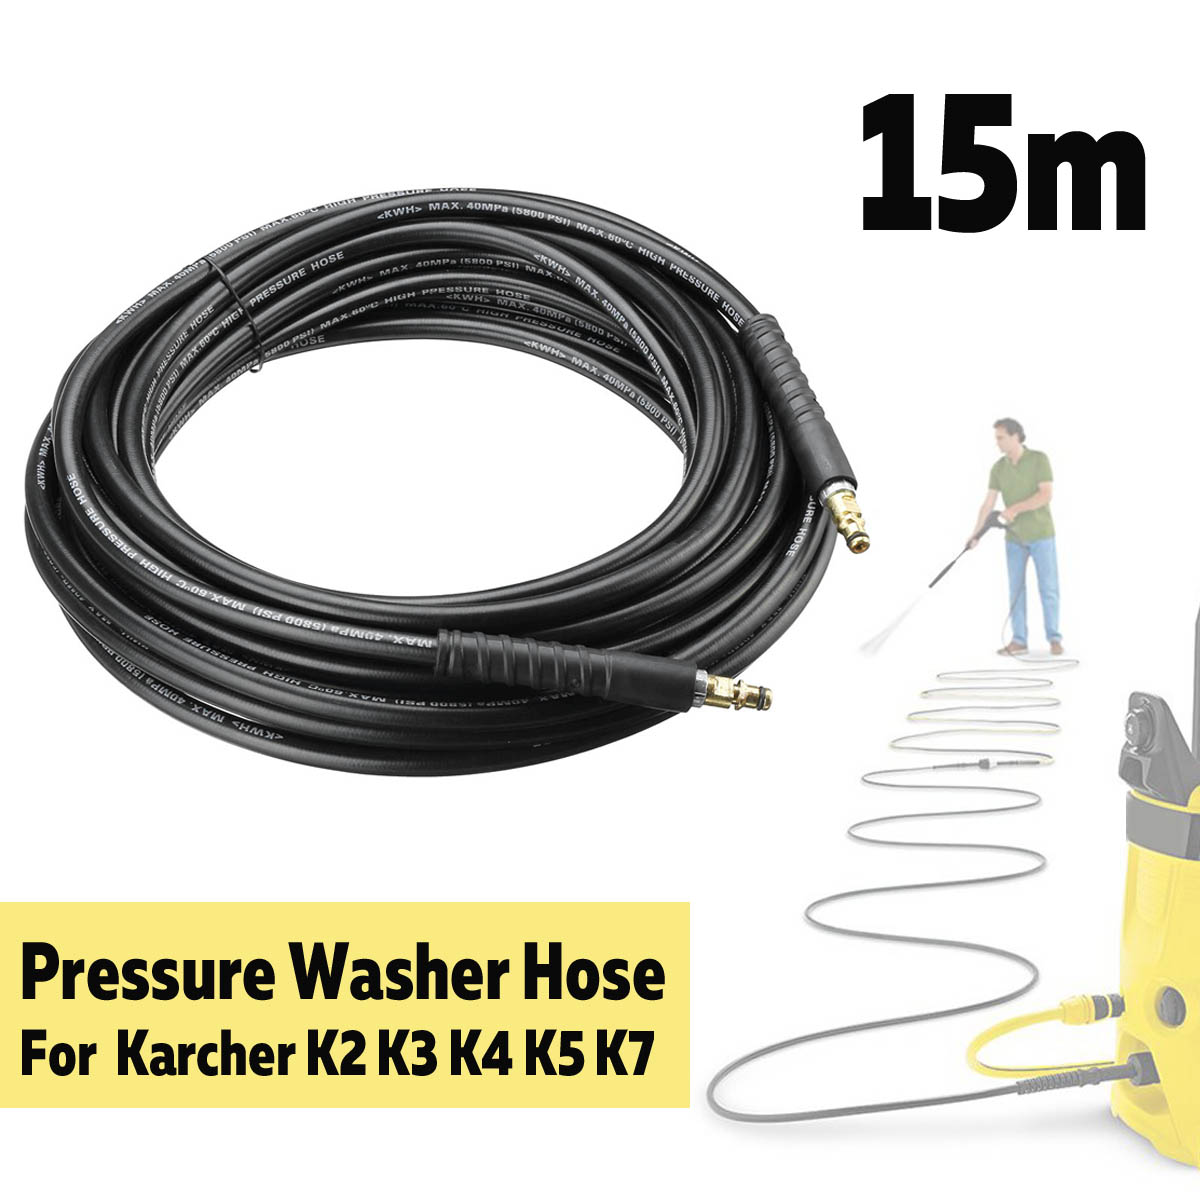 15m 40MPa 5800PSI High Pressure Washer Hose Pure Copper Cleaning Tube Car Wash Extension Hose Cord For Karcher K2 K3 K4 K5 K7(China)